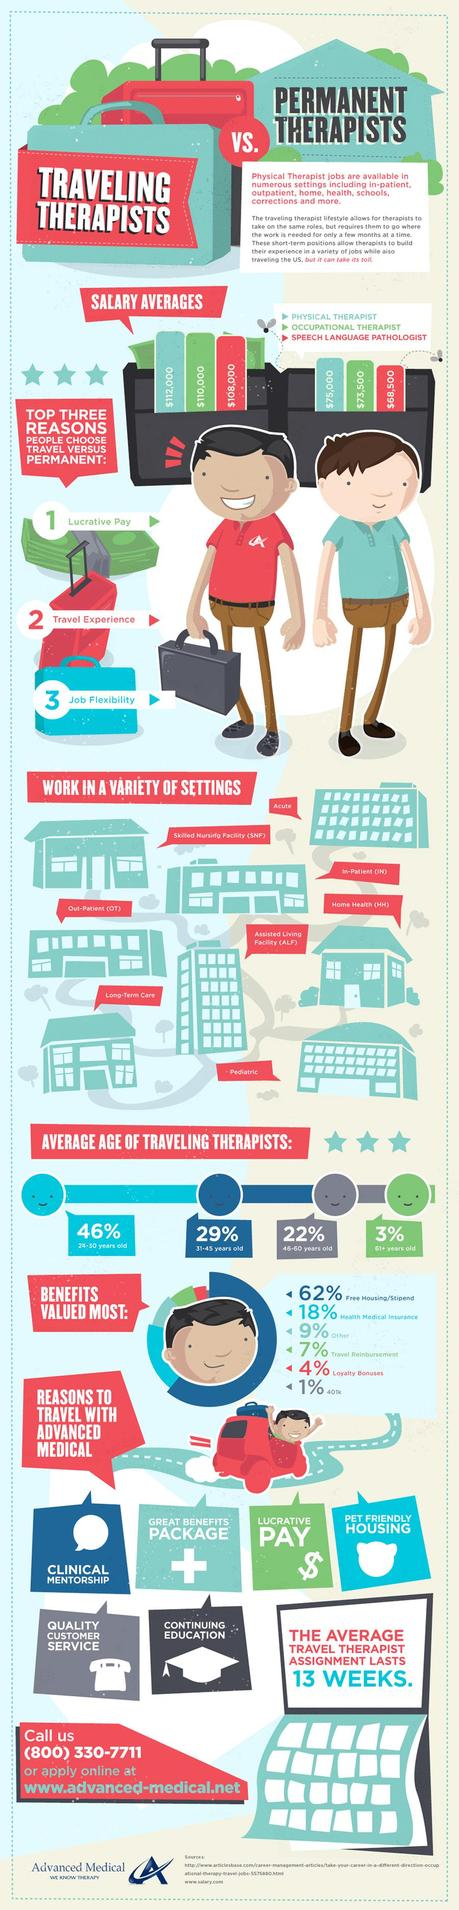 Travel Therapy Jobs vs Permanent Therapy Jobs